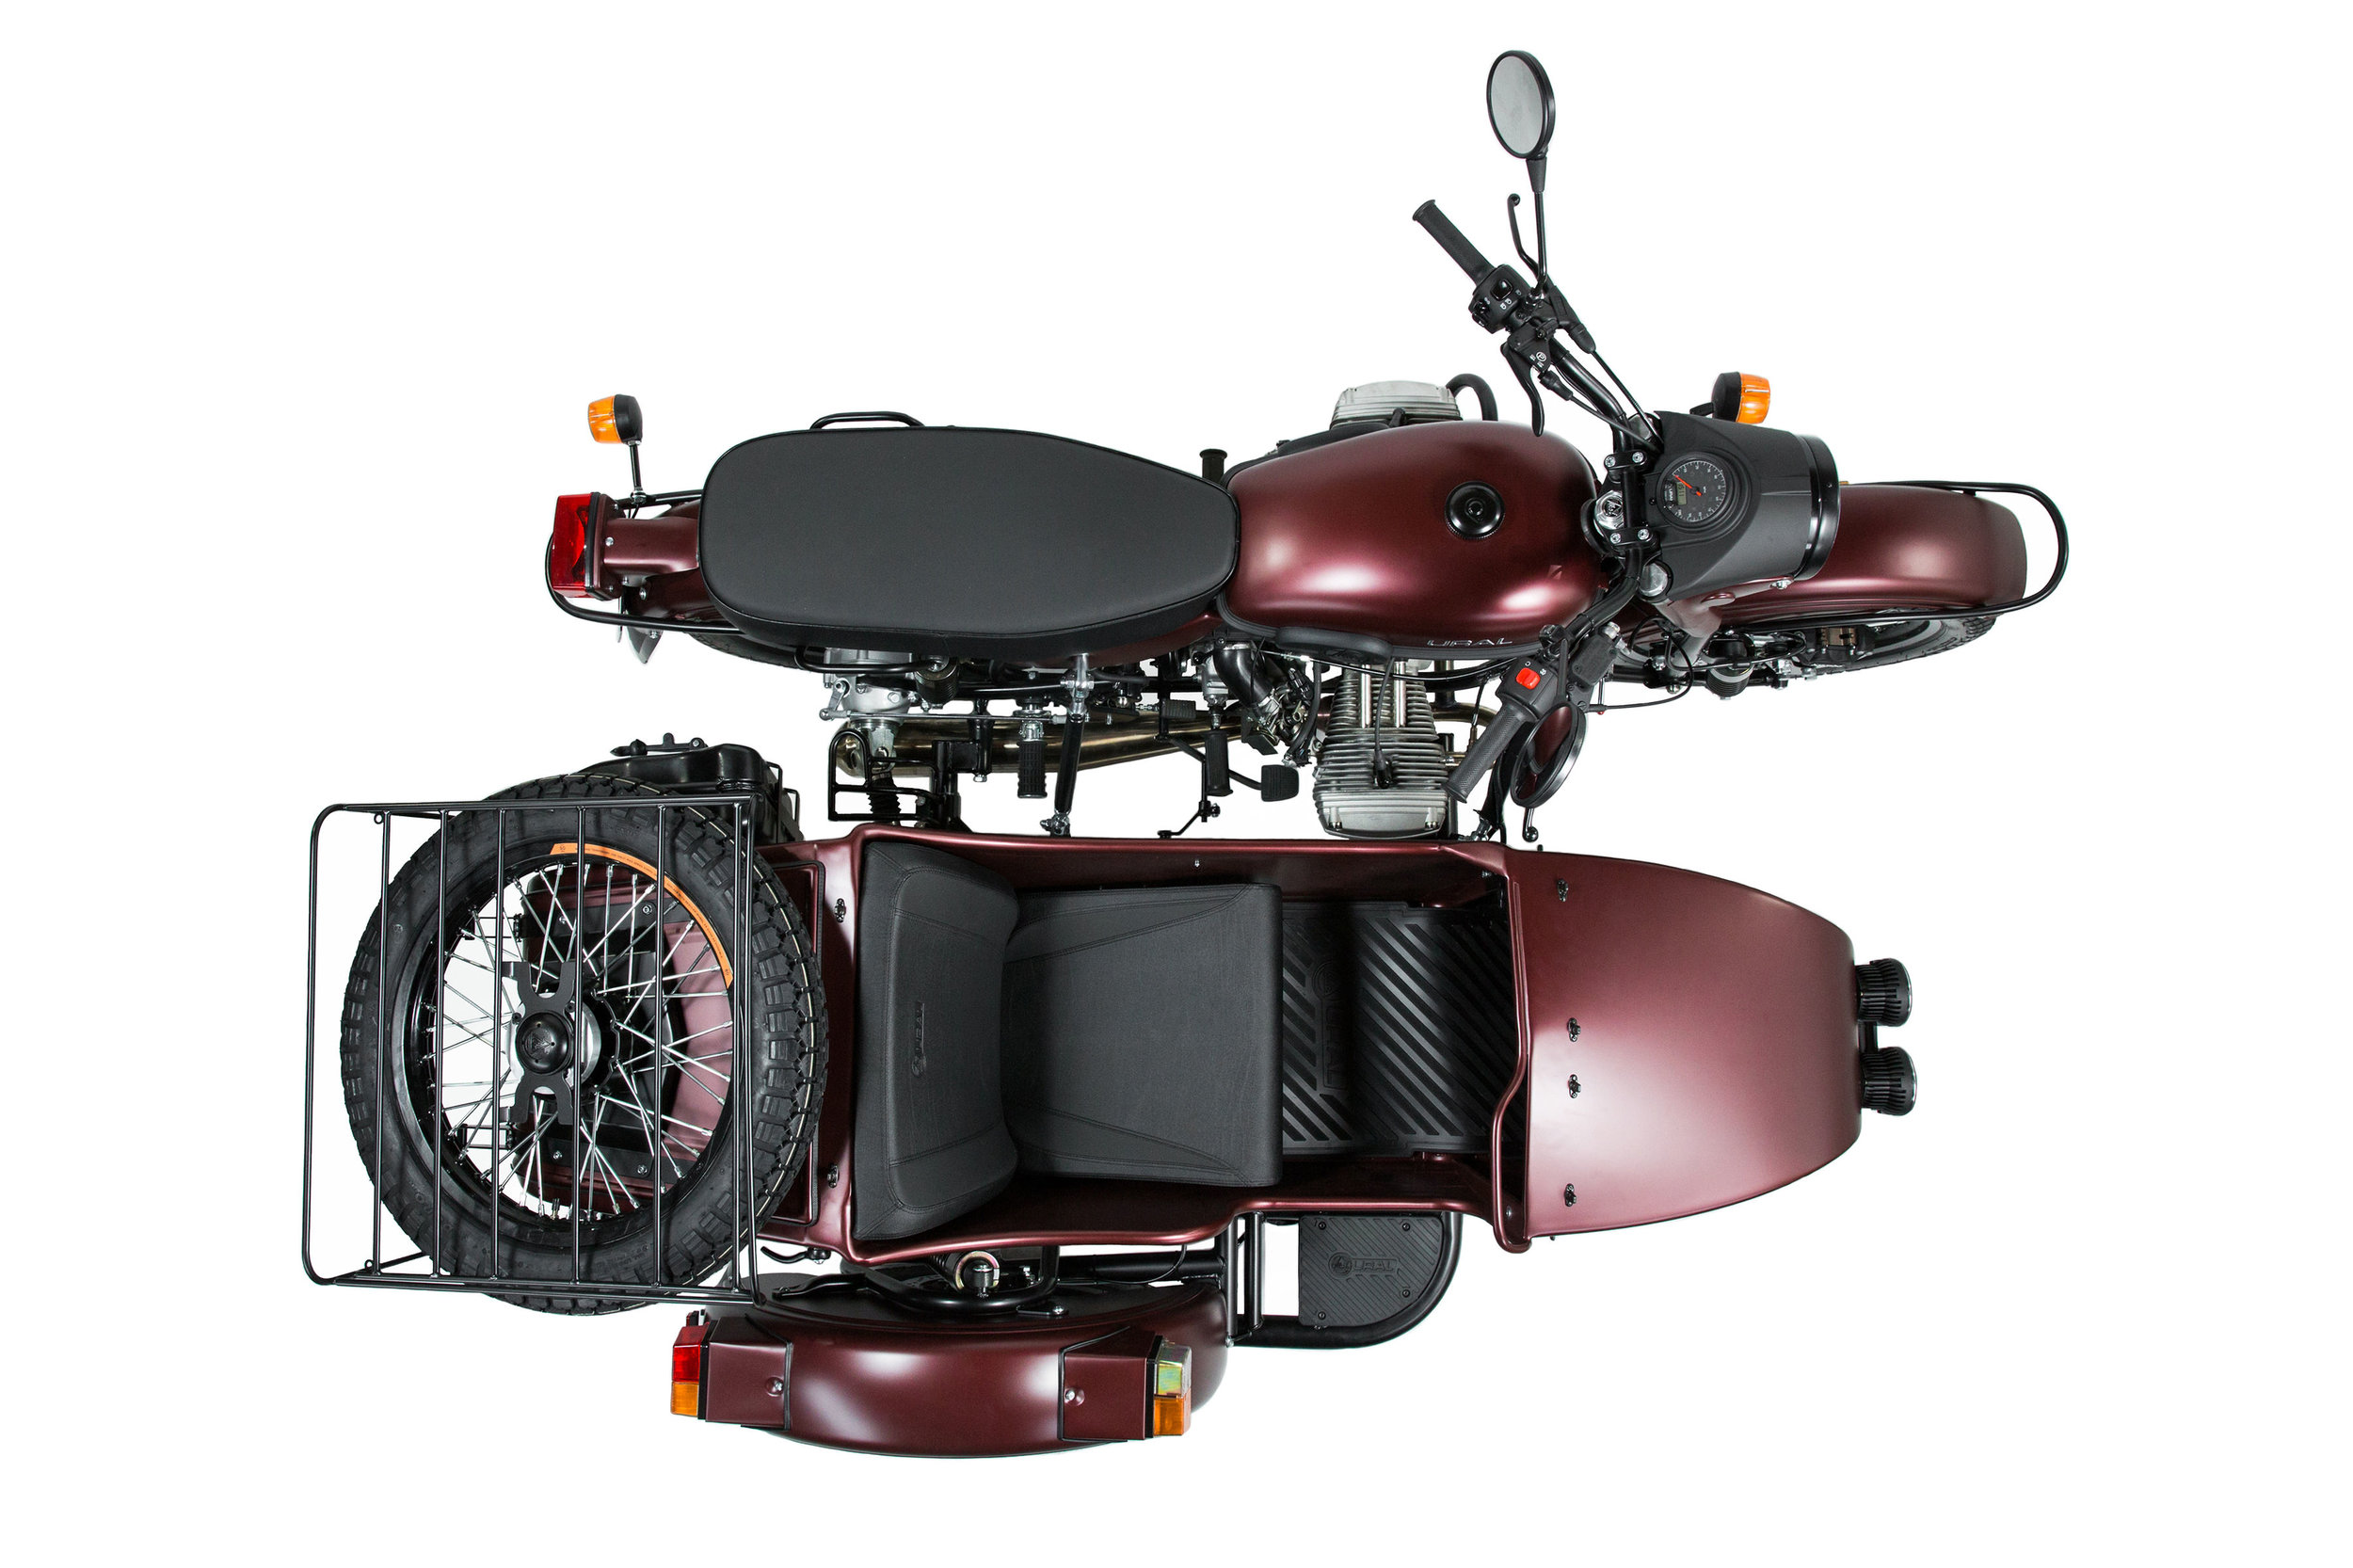 URAL_2019GearUp_Studio-14_final.jpg